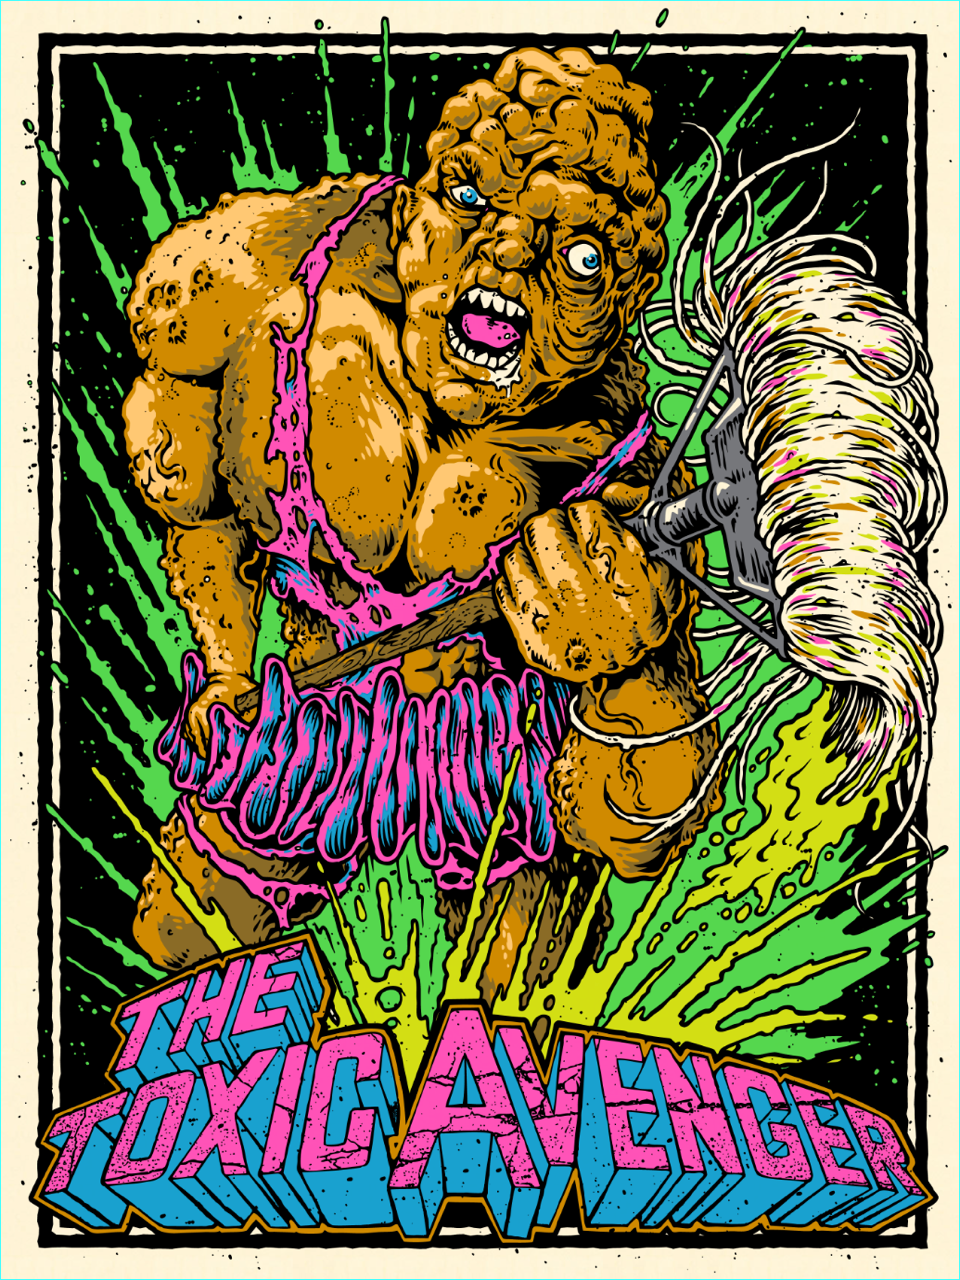 """Toxic Avenger"" by Horsebites.  18"" x 24"" 9-color Screenprint.  Ed of 200.  $35"